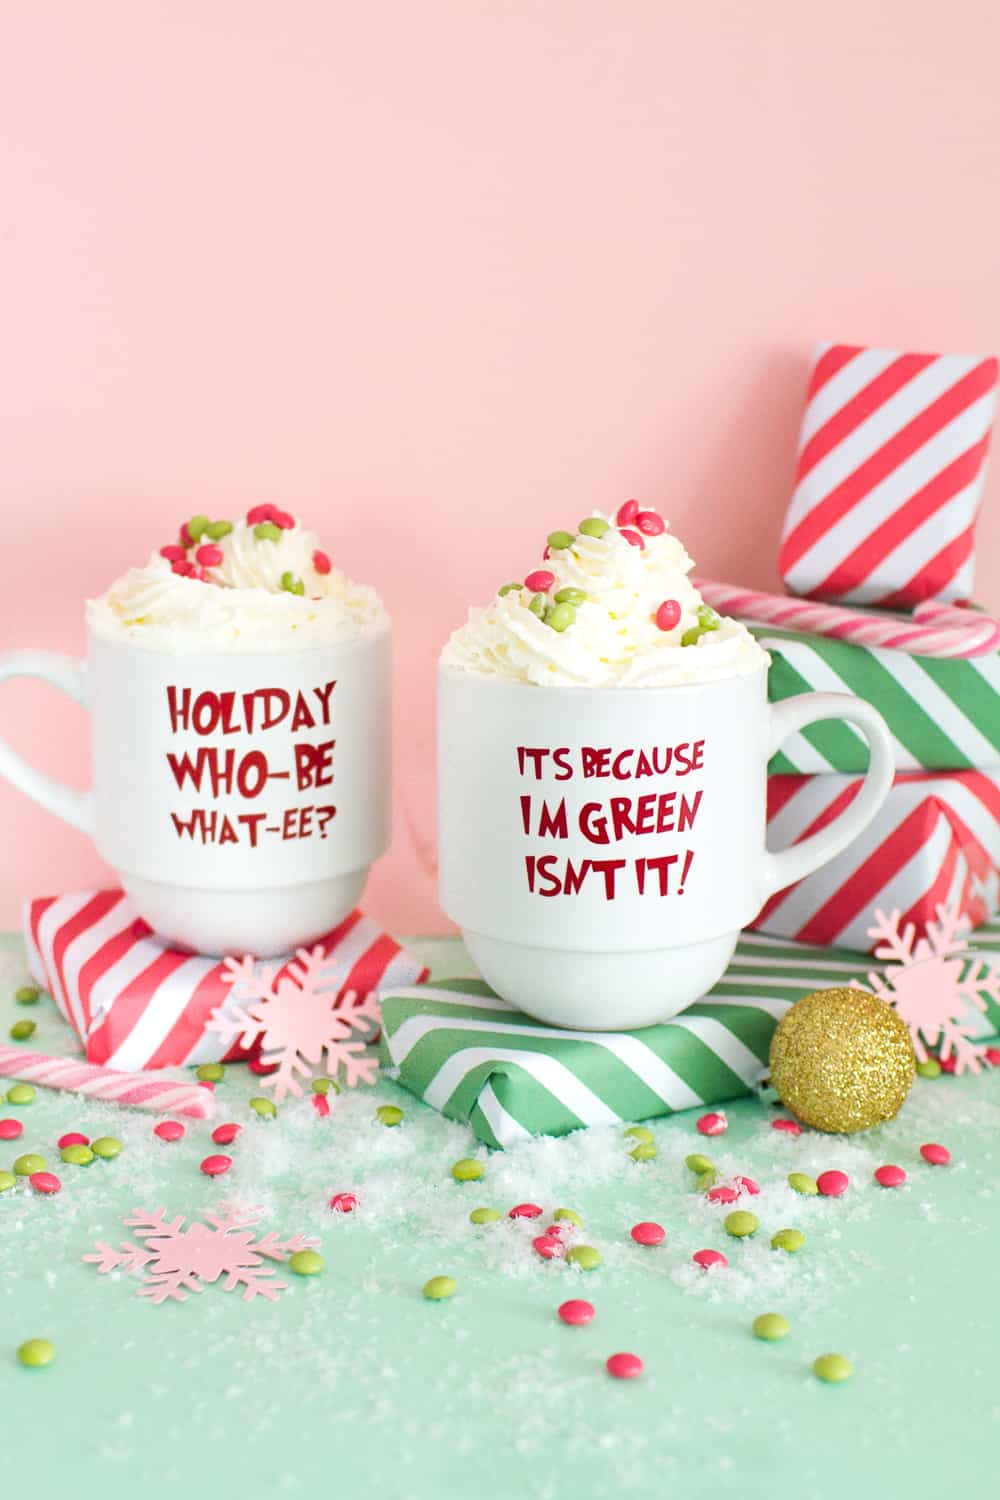 Grinch 2020 Christmas Quotes DIY GRINCH QUOTE GLASSES FOR A GRINCH THEMED CHRISTMAS MOVIE PARTY